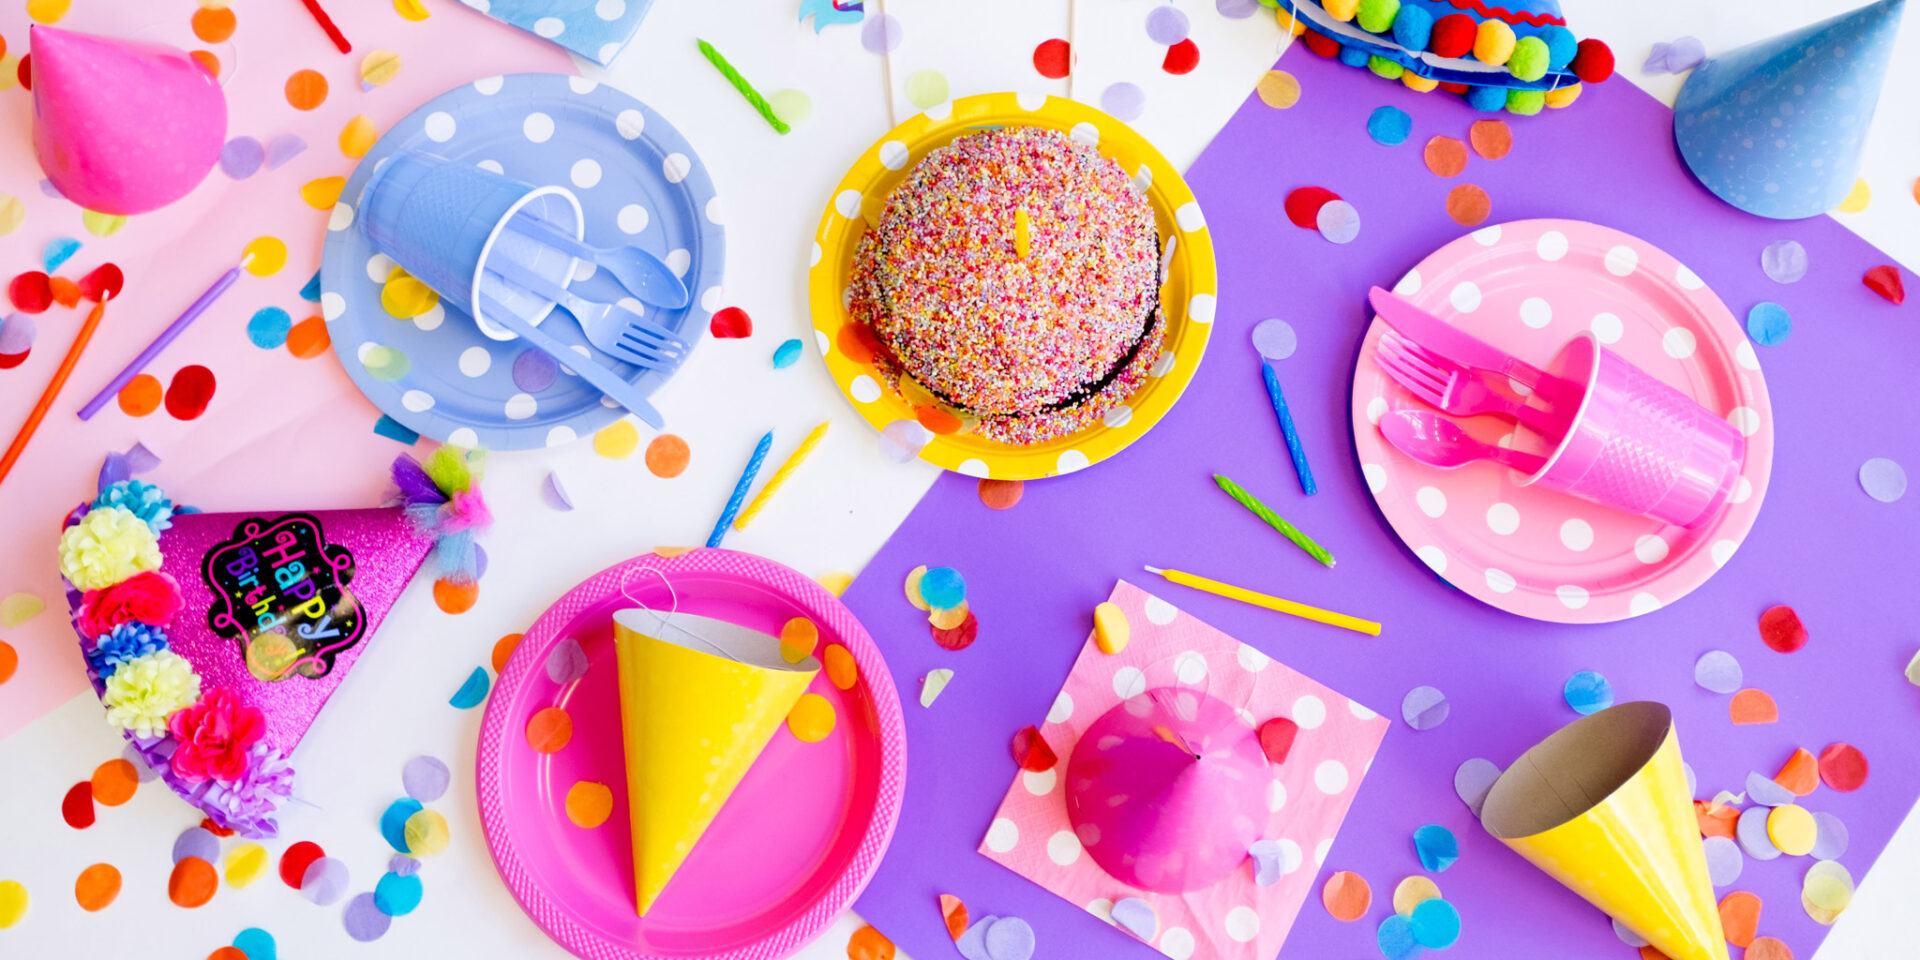 6 dino-themed kids party activity ideas that anyone can pull off